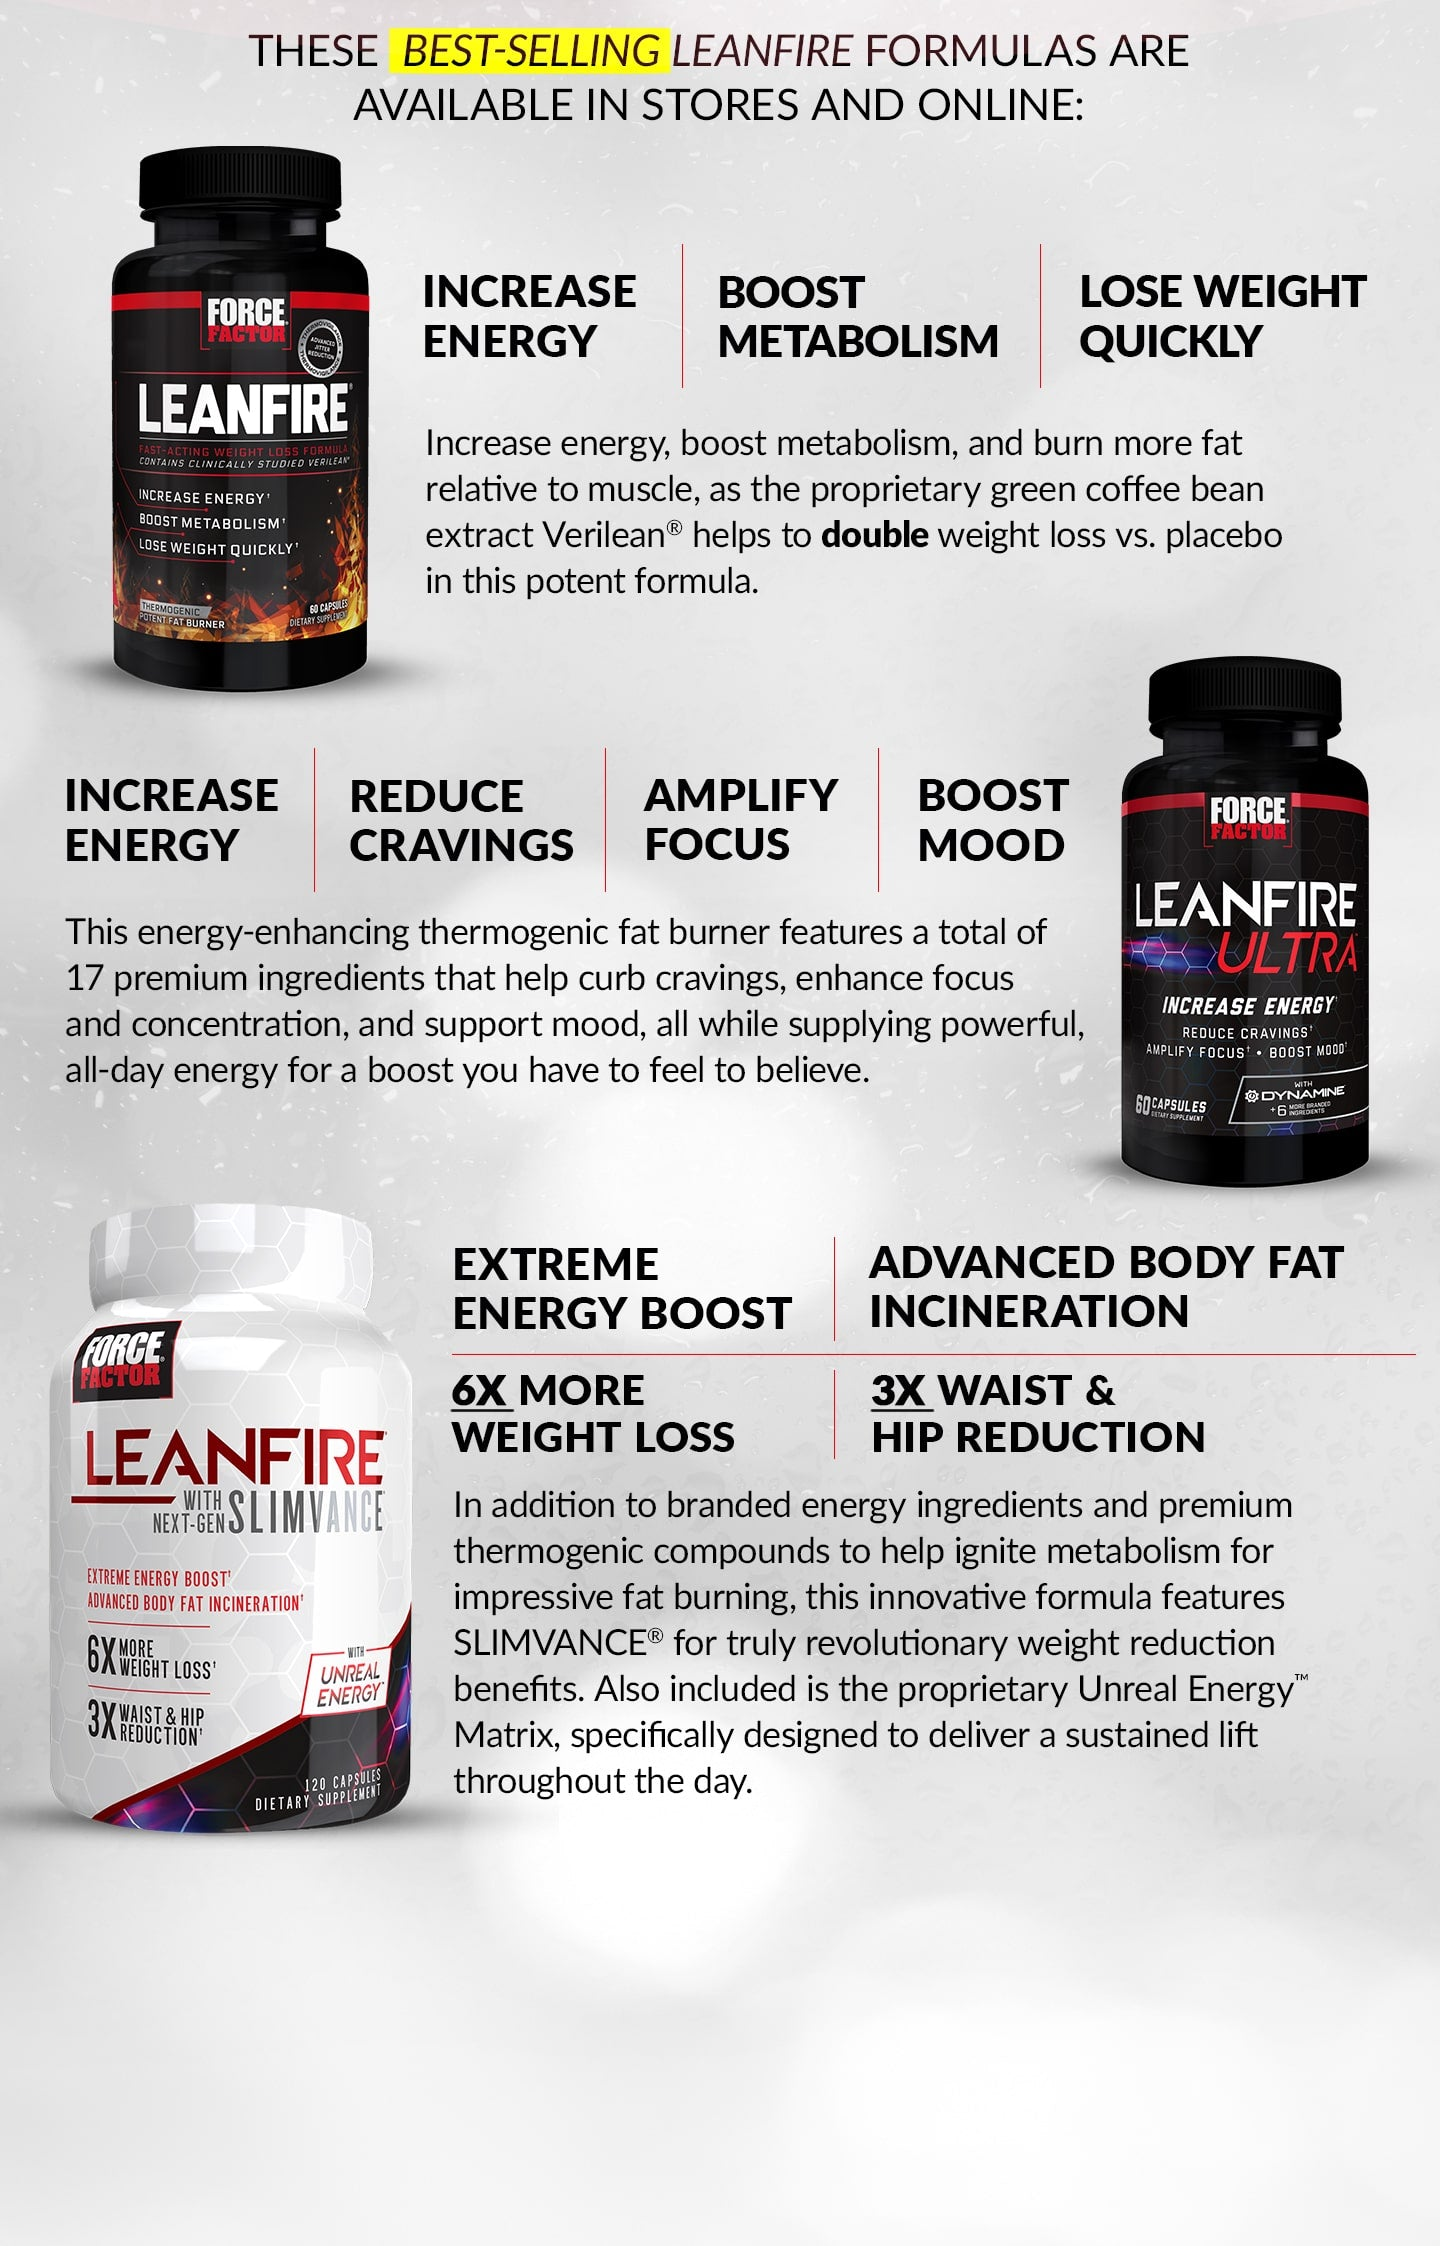 THESE BEST-SELLING LEANFIRE FORMULAS ARE AVAILABLE IN STORES AND ONLINE: LeanFire® - Increase Energy, Boost Metabolism, Lose Weight Quickly. Increase energy, boost metabolism, and burn more fat relative to muscle, as the proprietary green coffee bean extract Verilean® helps to double weight loss vs. placebo in this potent formula. LeanFire Ultra® Increase Energy, Reduce Cravings, Amplify Focus, Boost Mood. This energy-enhancing thermogenic fat burner features a total of 17 premium ingredients that help curb cravings, enhance focus and concentration, and support mood, all while supplying powerful, all-day energy for a boost you have to feel to believe. LeanFire with Next-Gen SLIMVANCE® - Extreme Energy Boost, Advanced Body Fat Incineration, 6X MORE WEIGHT LOSS, 3X WAIST & HIP REDUCTION. In addition to branded energy ingredients and premium thermogenic compounds to help ignite metabolism for impressive fat burning, this innovative formula features SLIMVANCE® for truly revolutionary weight reduction benefits. Also included is the proprietary Unreal Energy™ Matrix, specifically designed to deliver a sustained lift throughout the day.